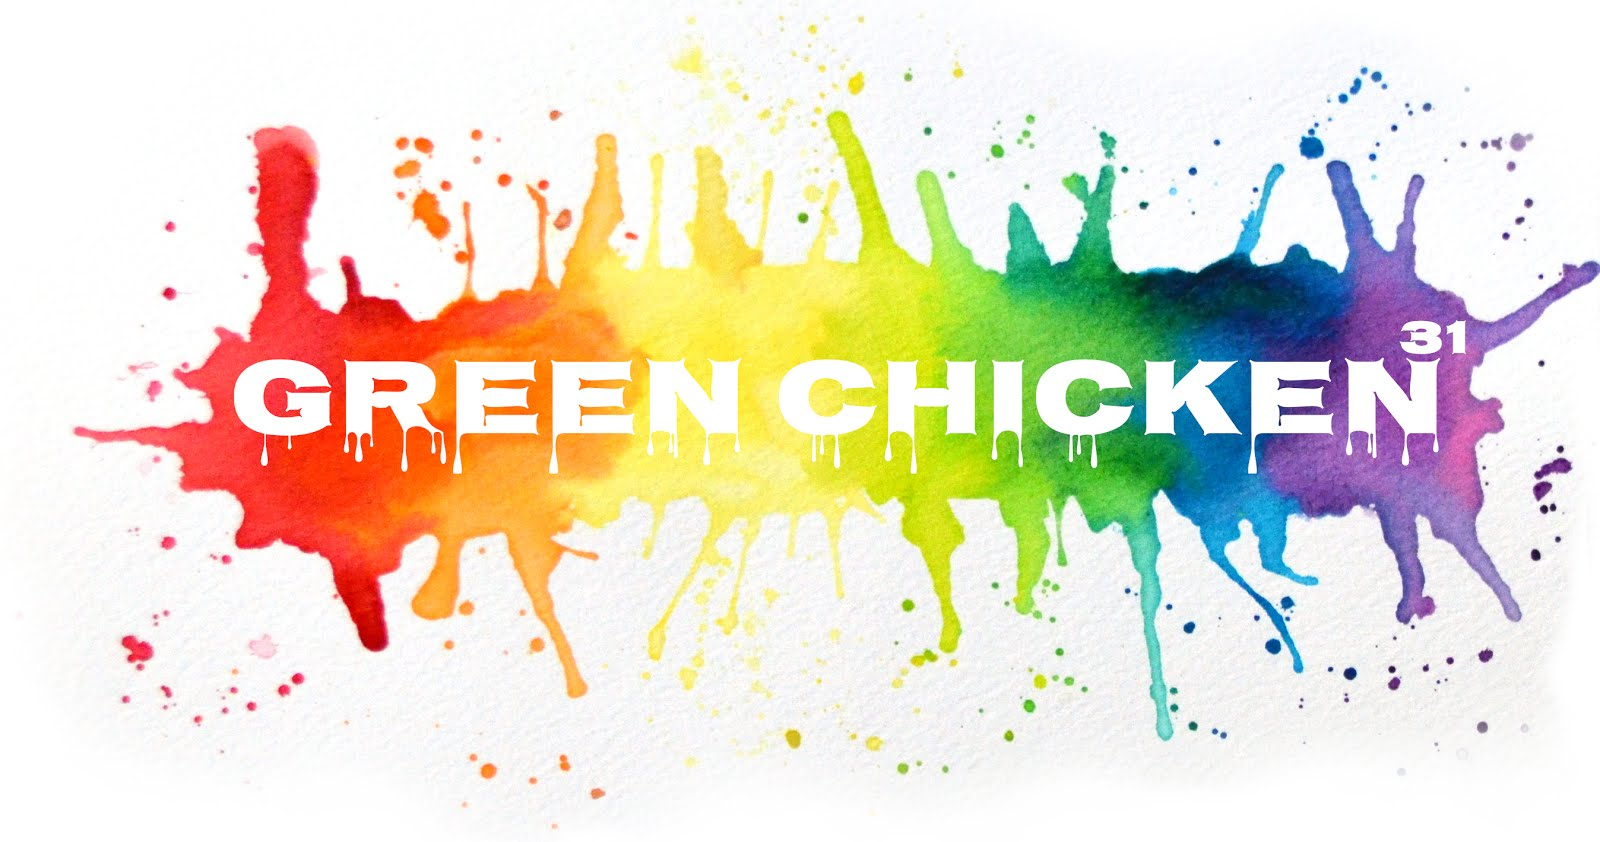 GreenChicken31